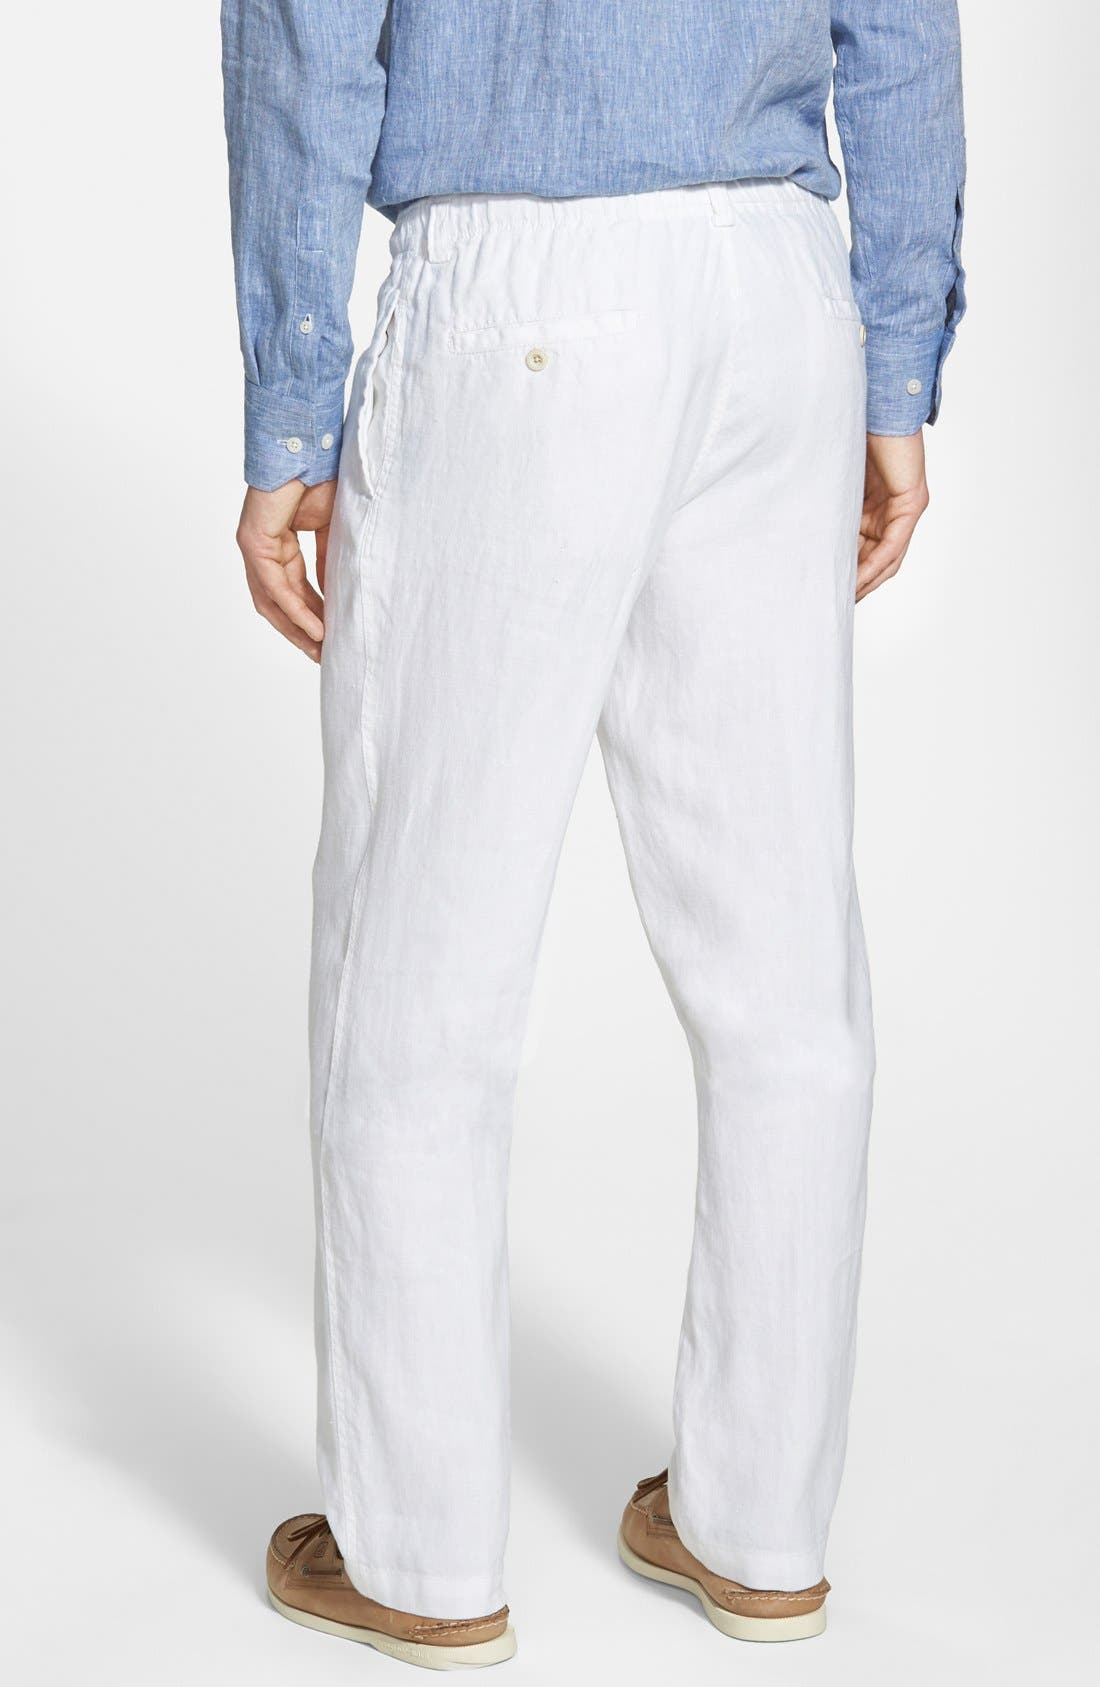 'New Linen on the Beach' Easy Fit Pants,                             Alternate thumbnail 2, color,                             100